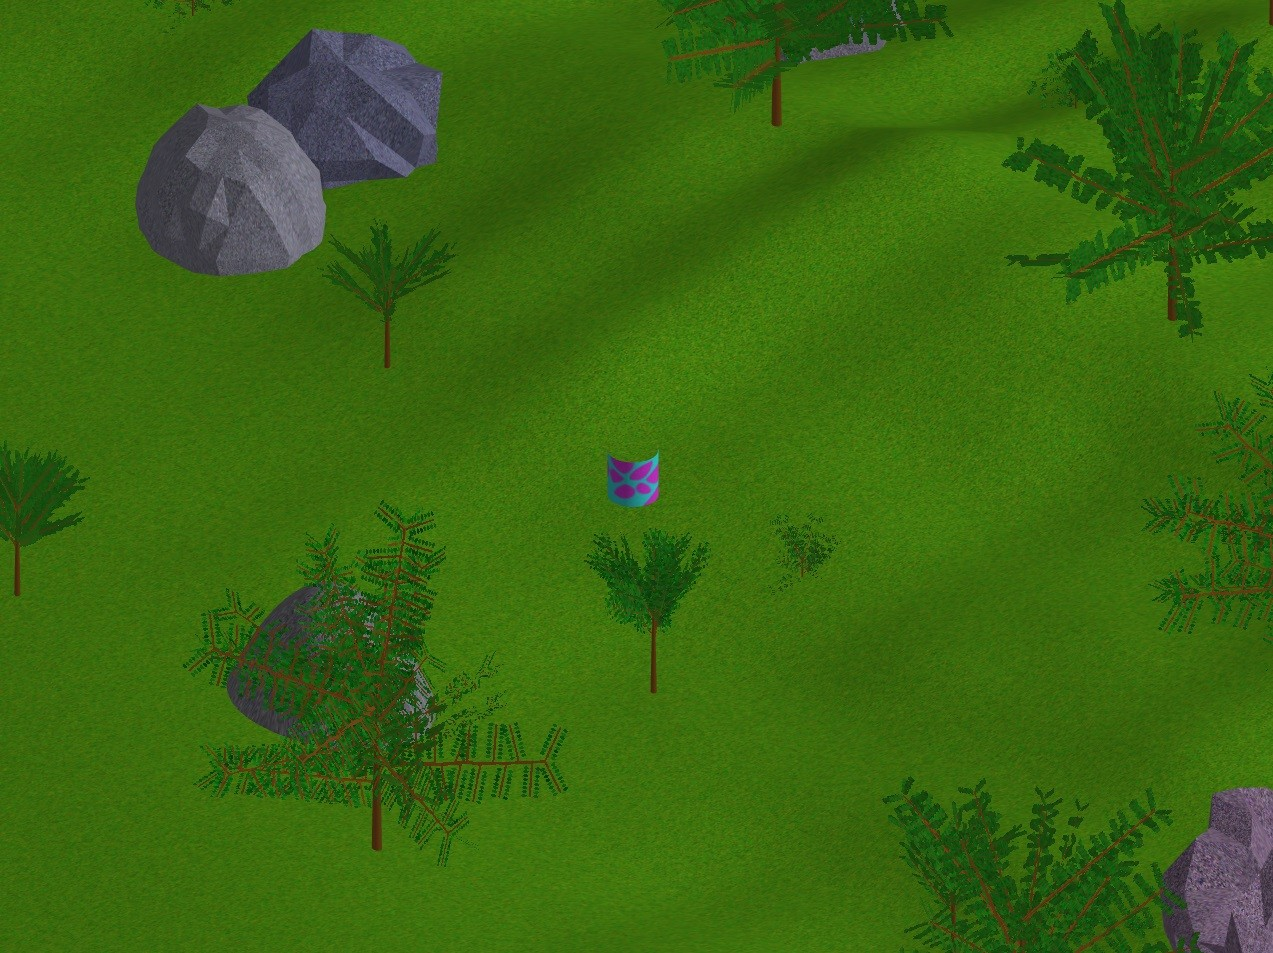 isometric view, rotated in theta direction